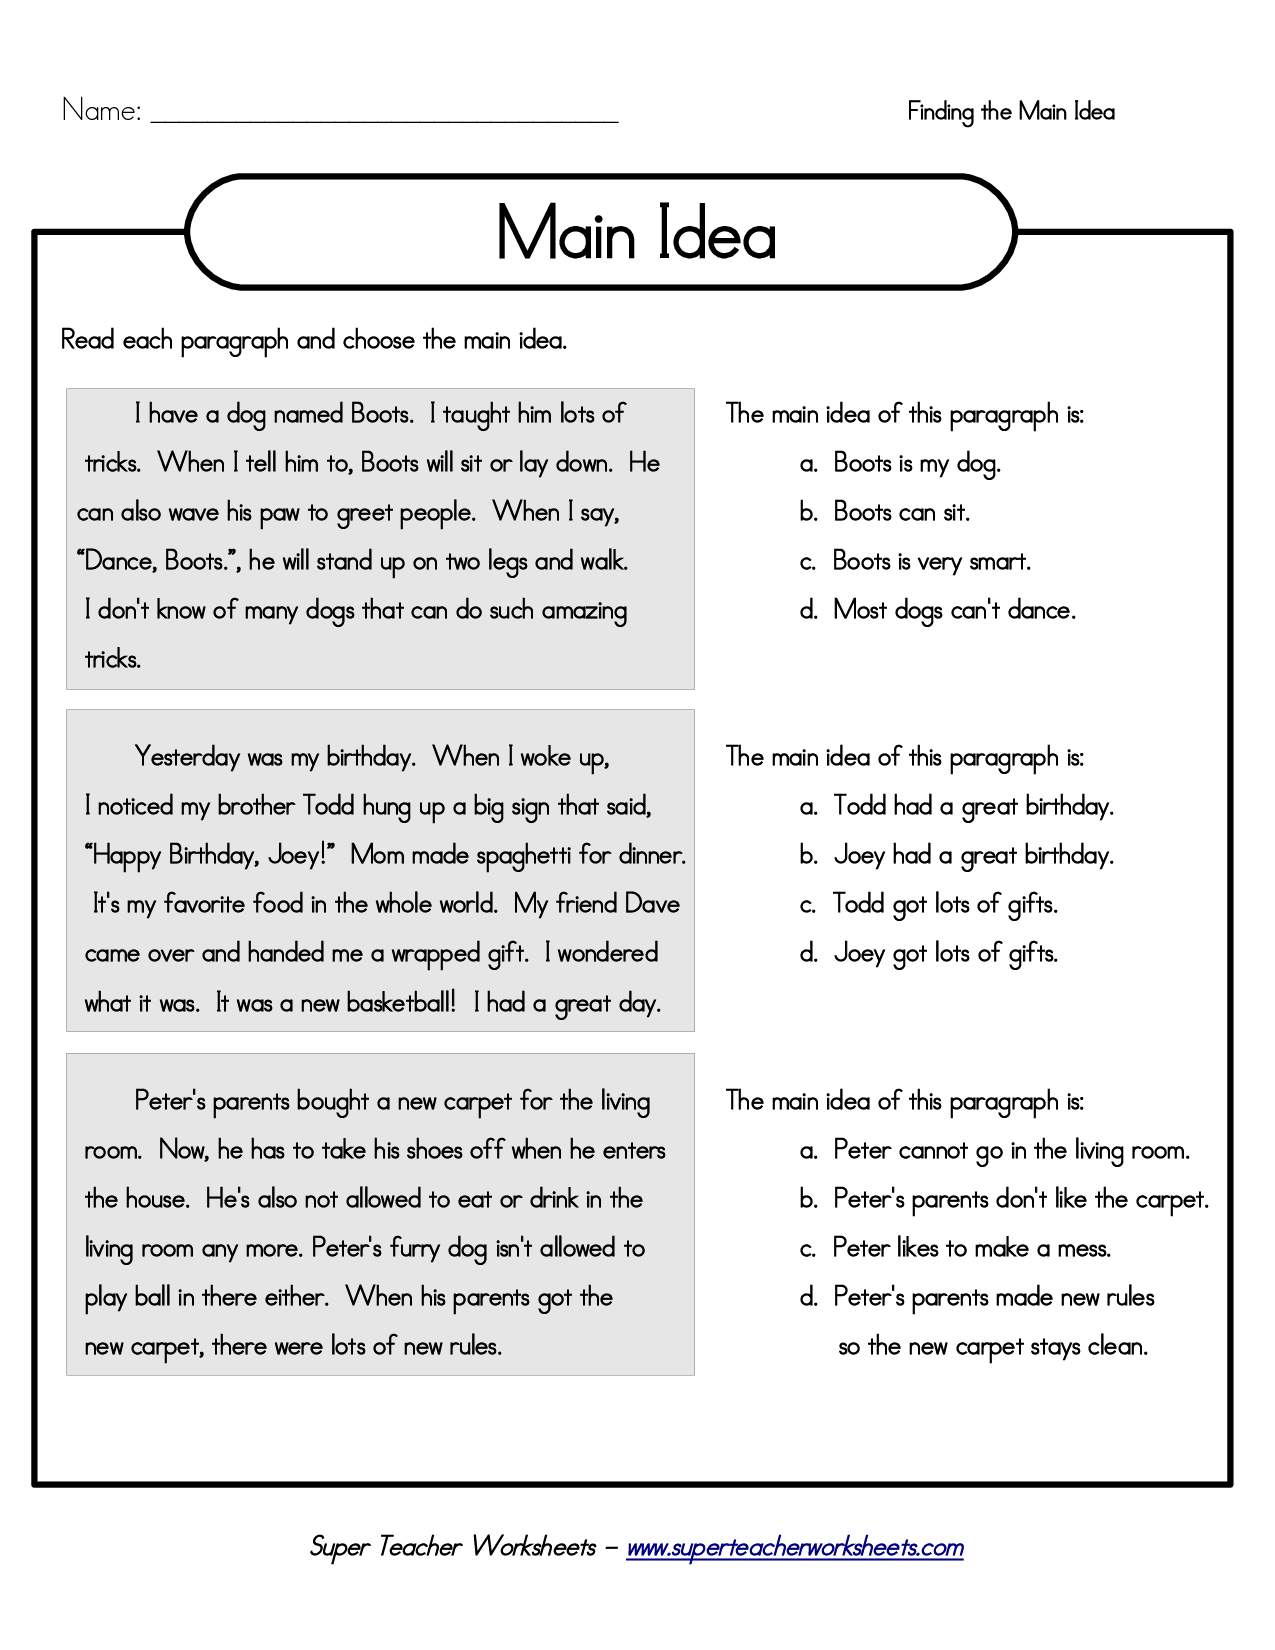 Free Worksheet Main Idea Worksheets 5th Grade 17 best images about reading main idea on pinterest graphic organizers student centered resources and pictures